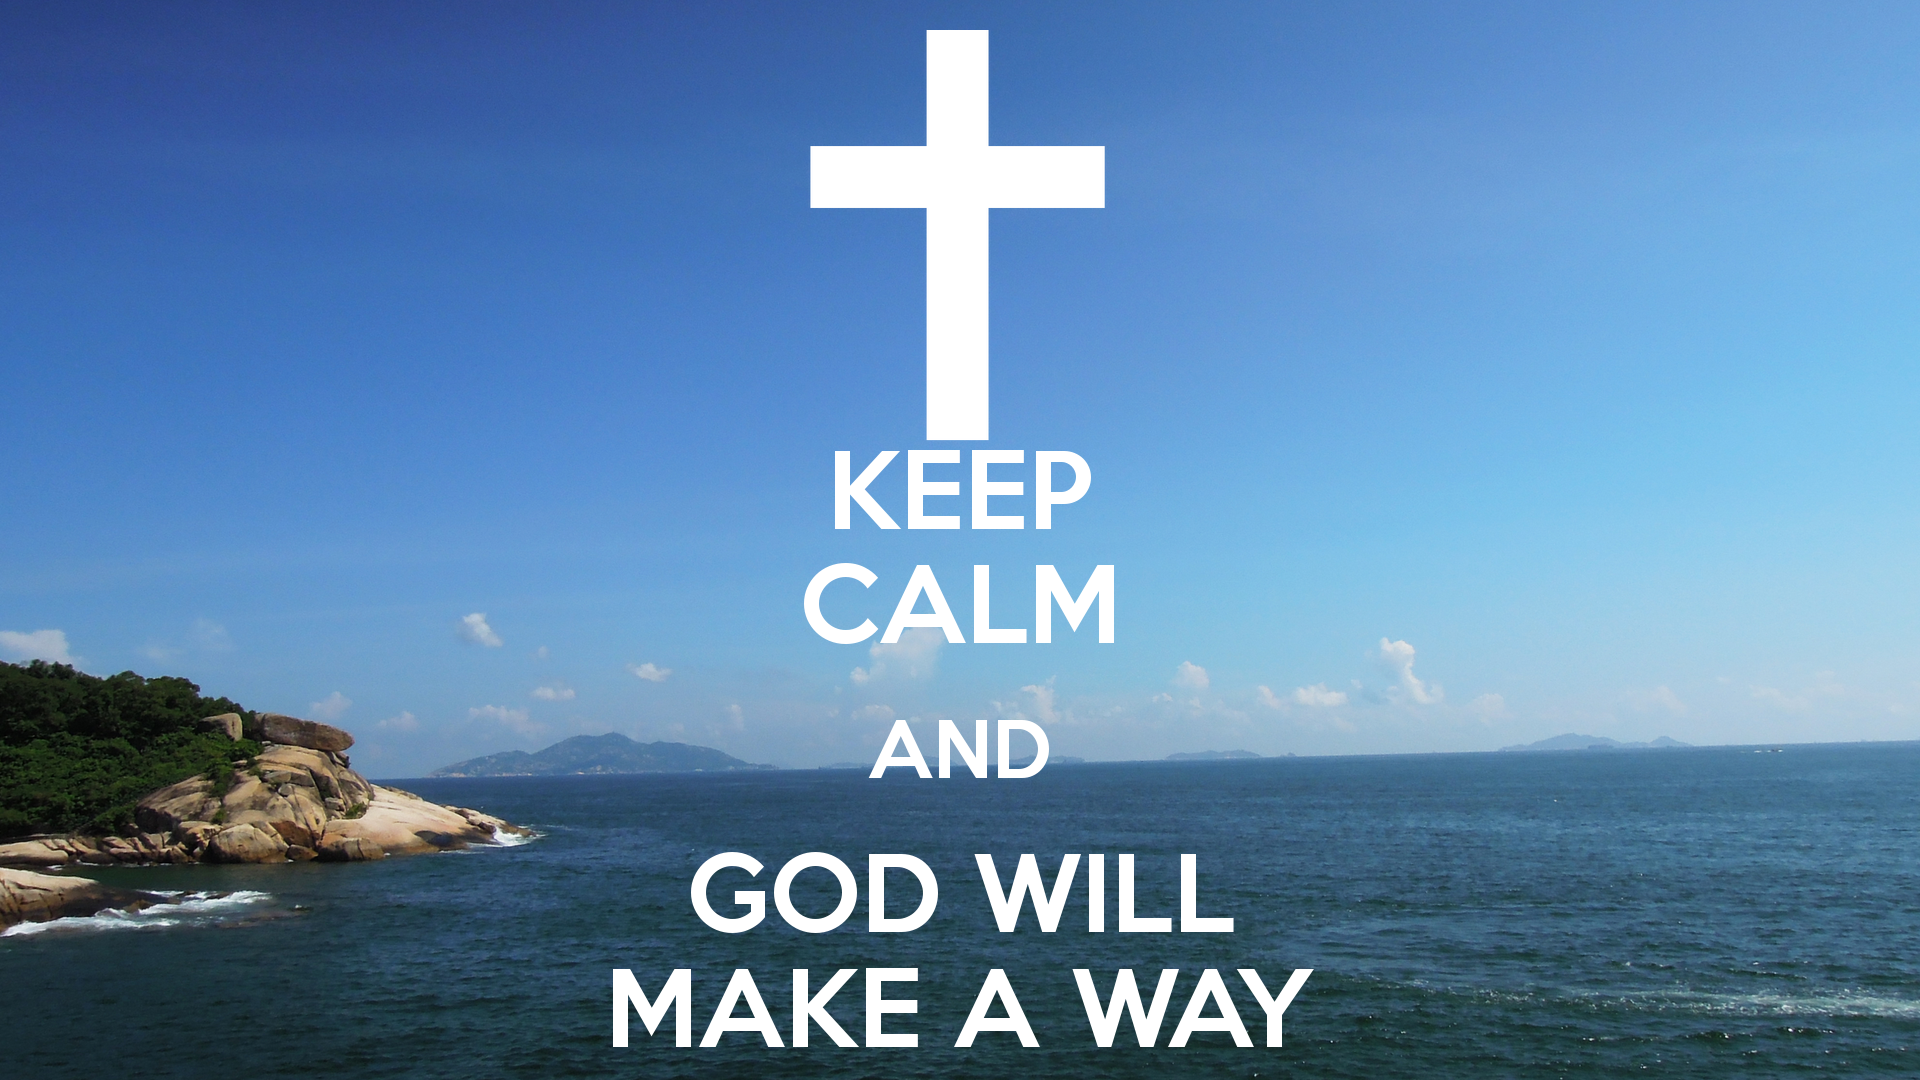 Download God Will Make A Way Wallpaper Gallery